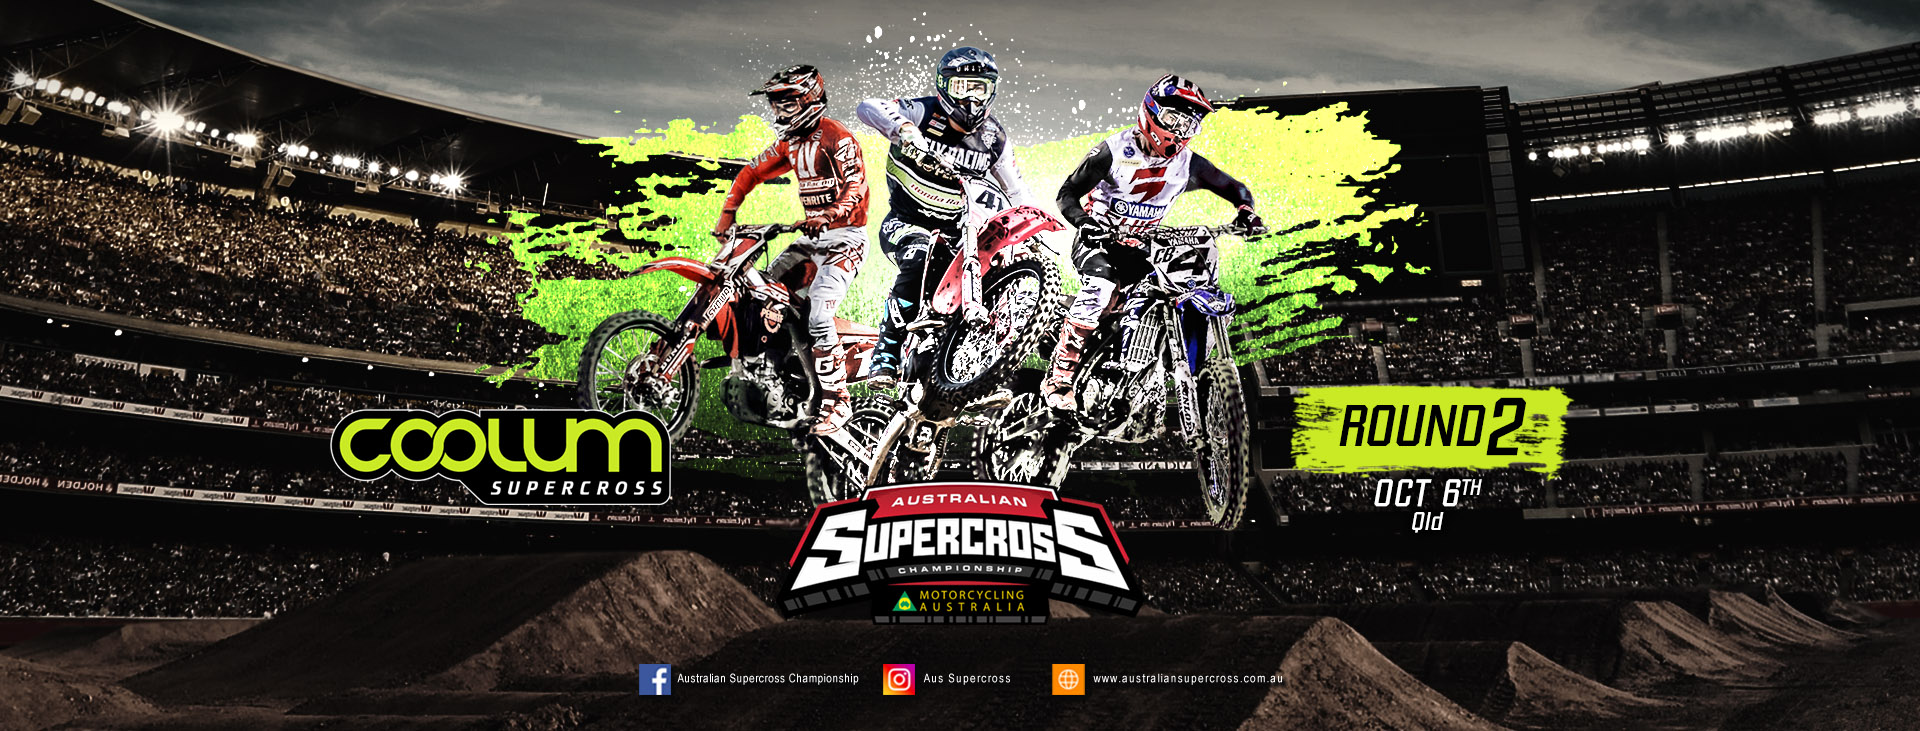 Tickets for Australian Supercross Championship Round 2: Coolum in Coolum Beach from Ticketbooth